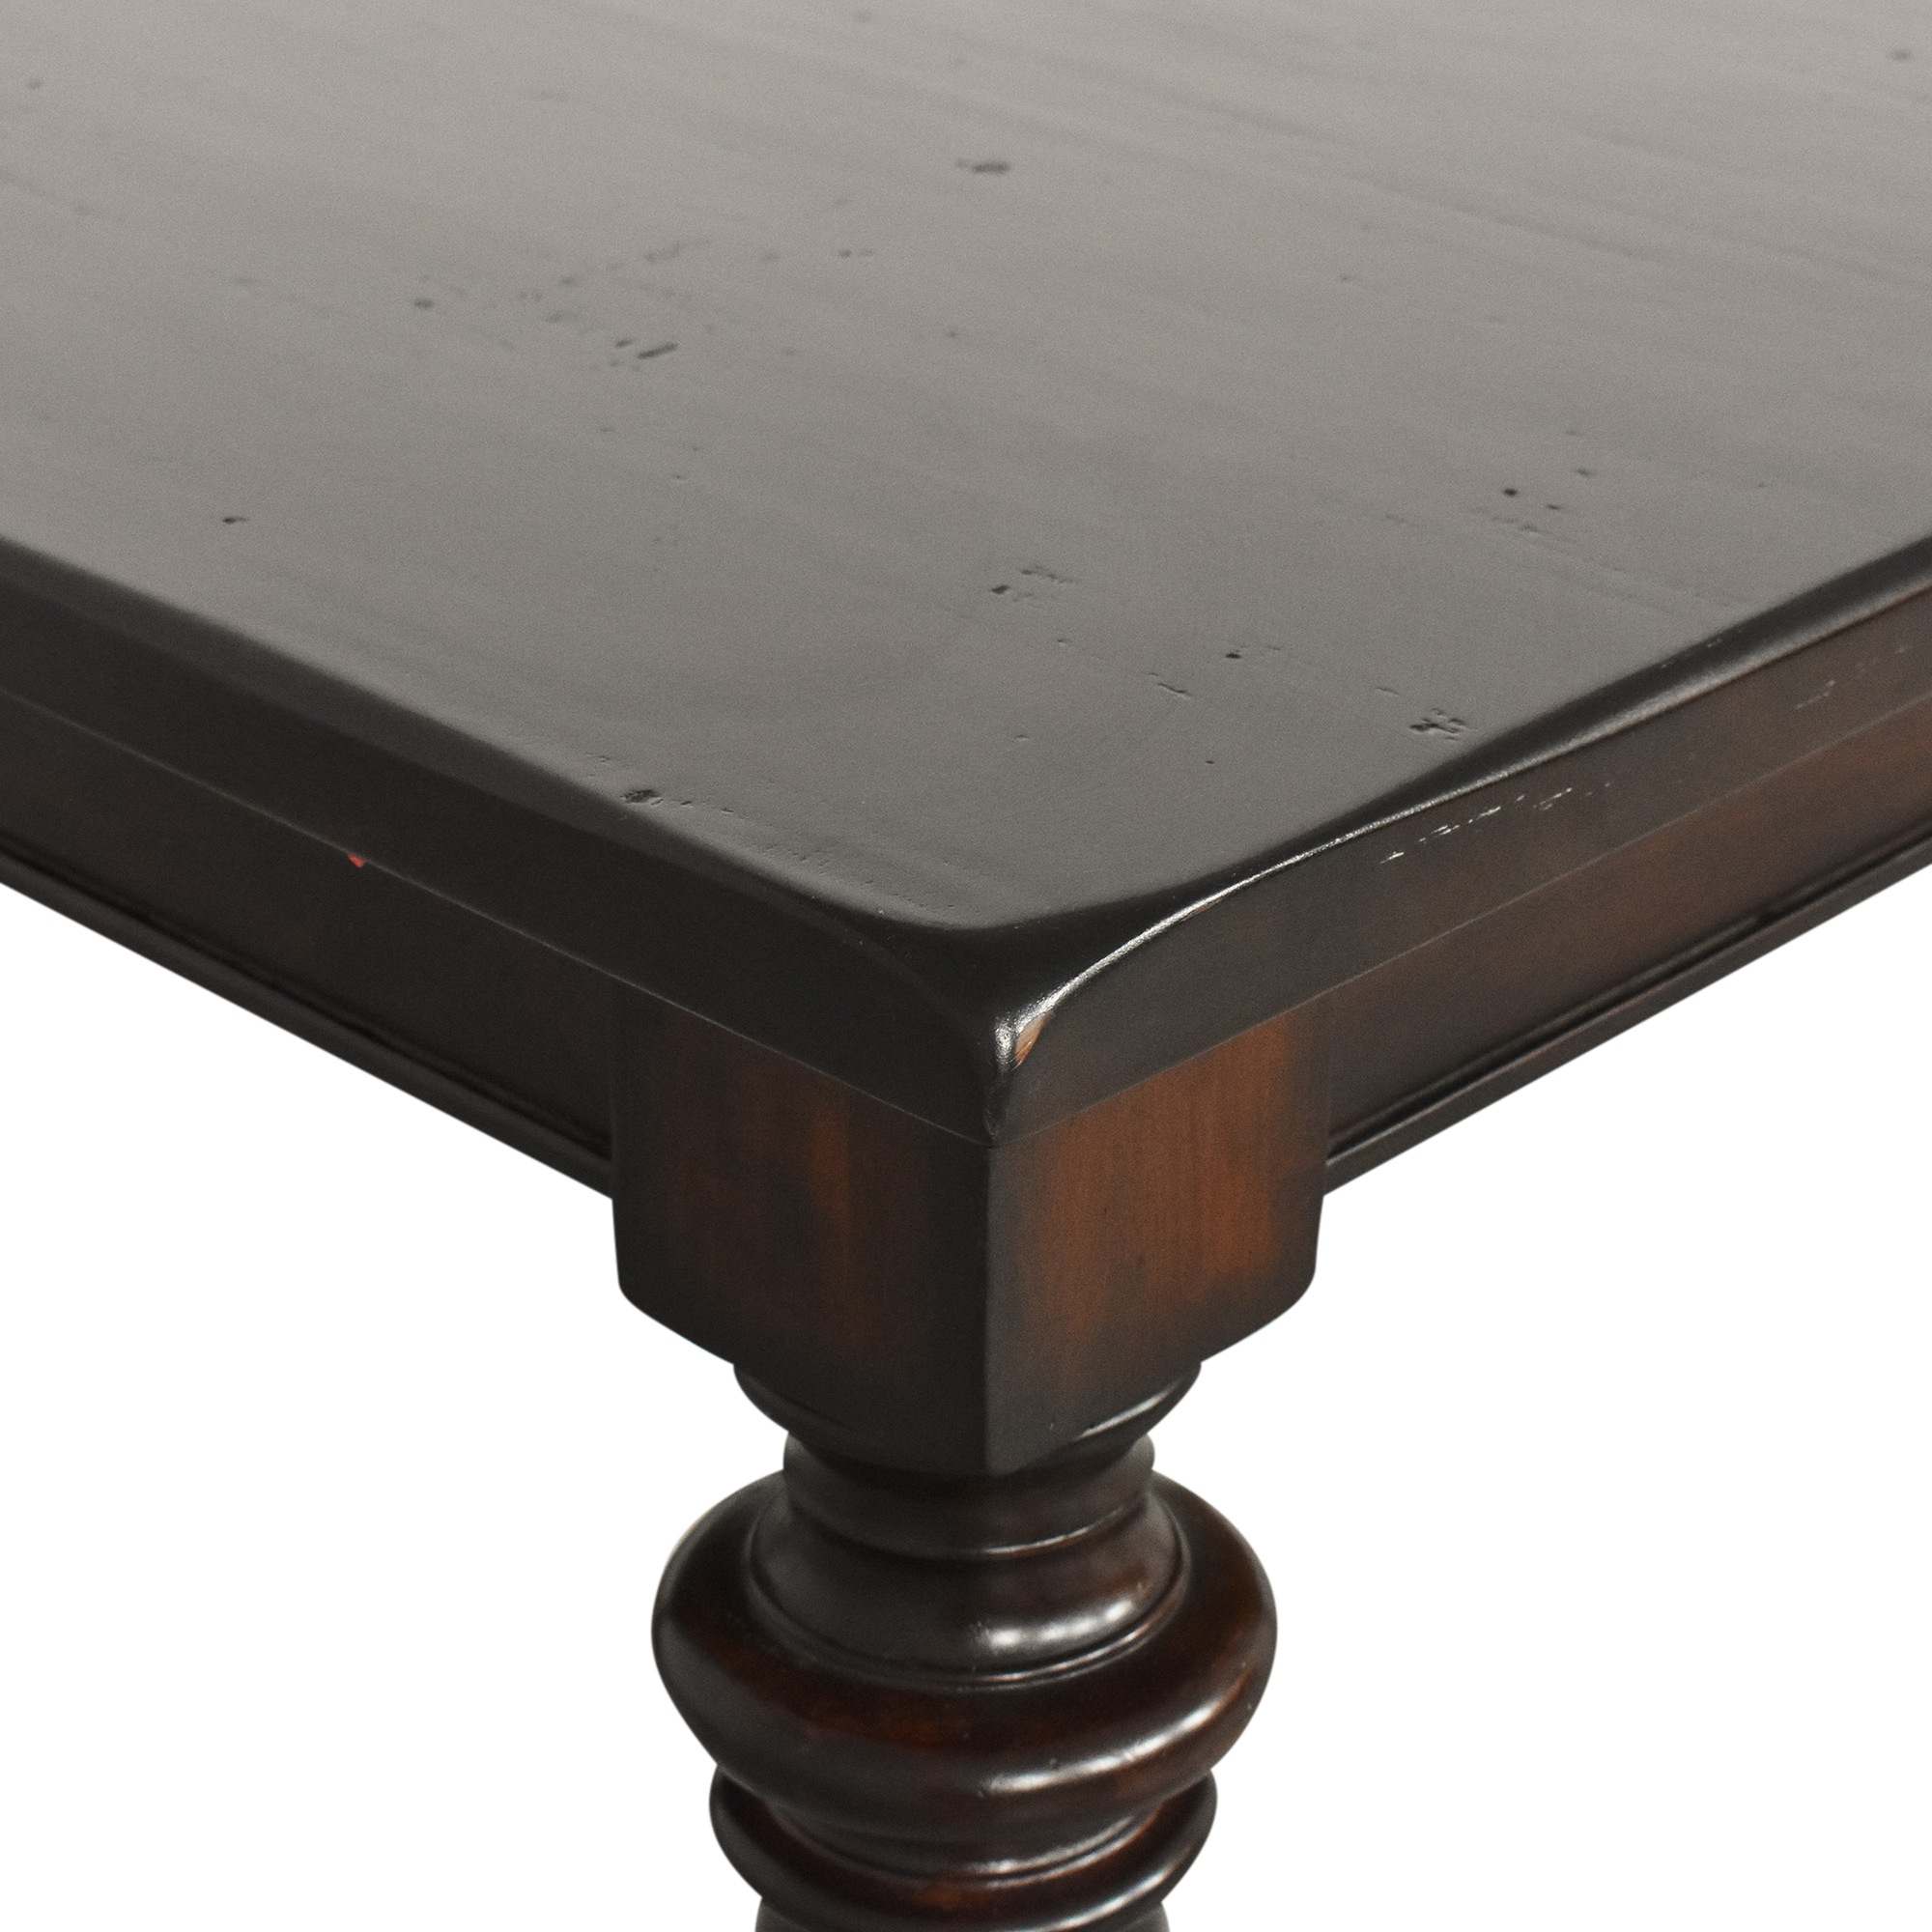 Pottery Barn Pottery Barn Montego Turned-Leg Dining Table second hand